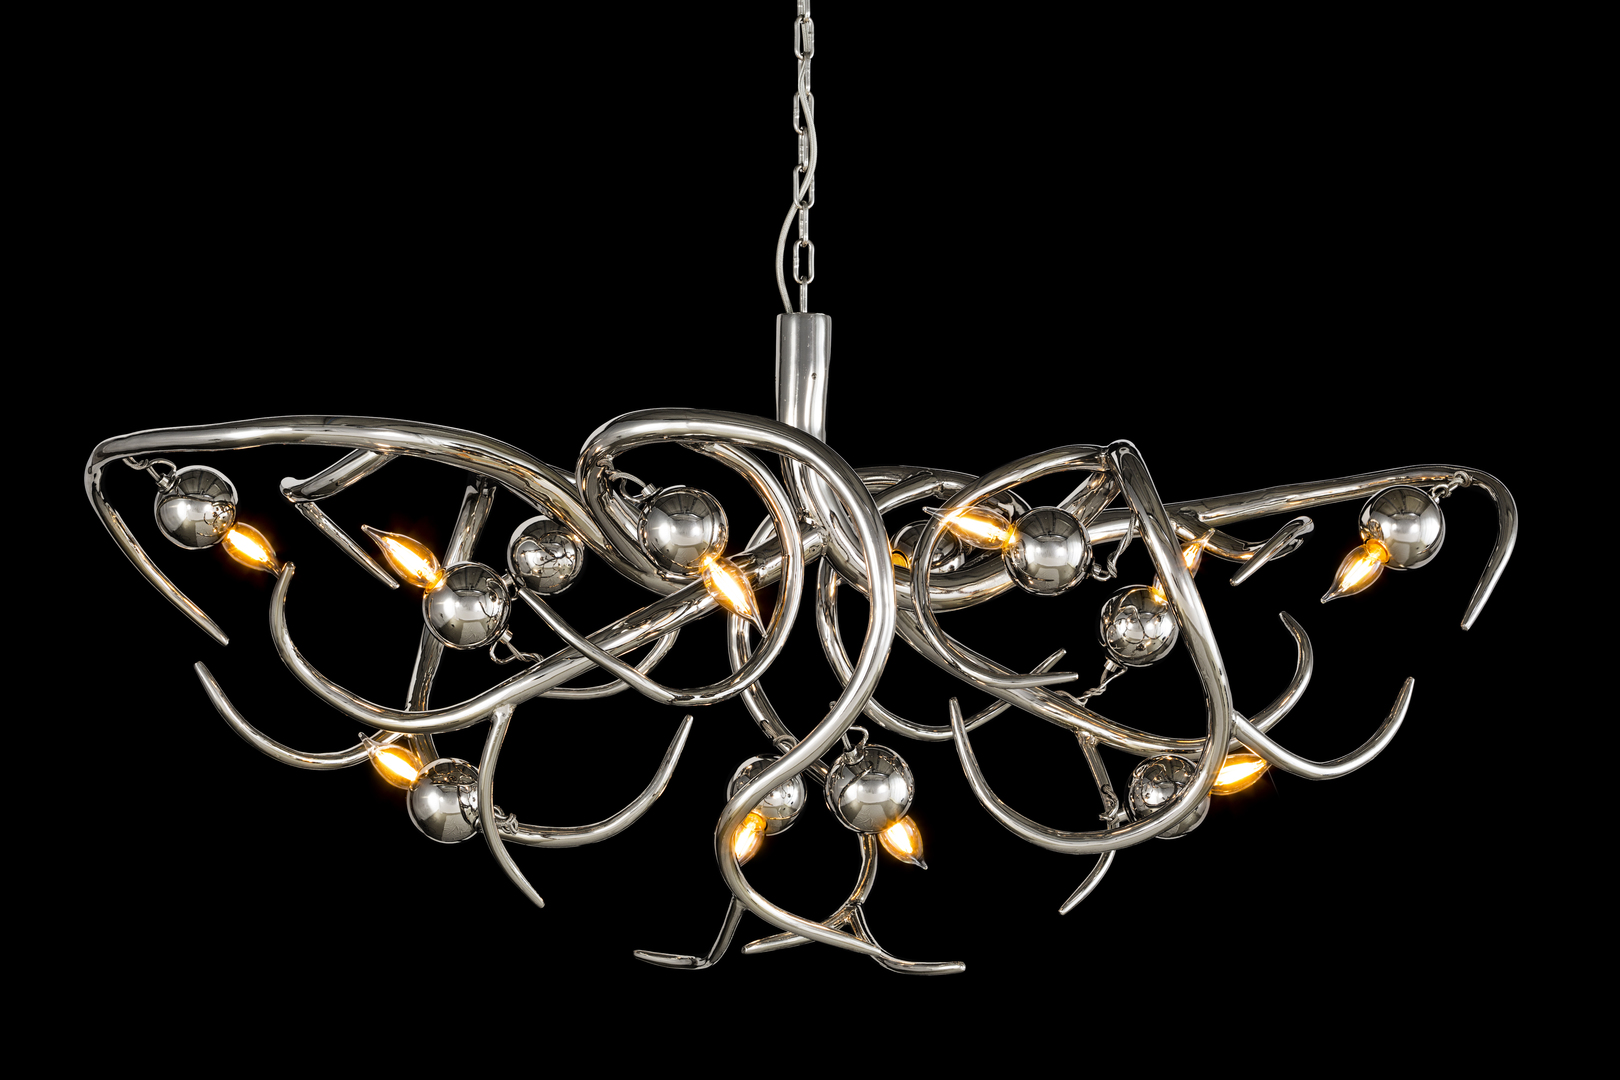 brandvanegmond_eve_chandelier_oval_copper finish_EVEOC140N_studio_blackbackground.jpg